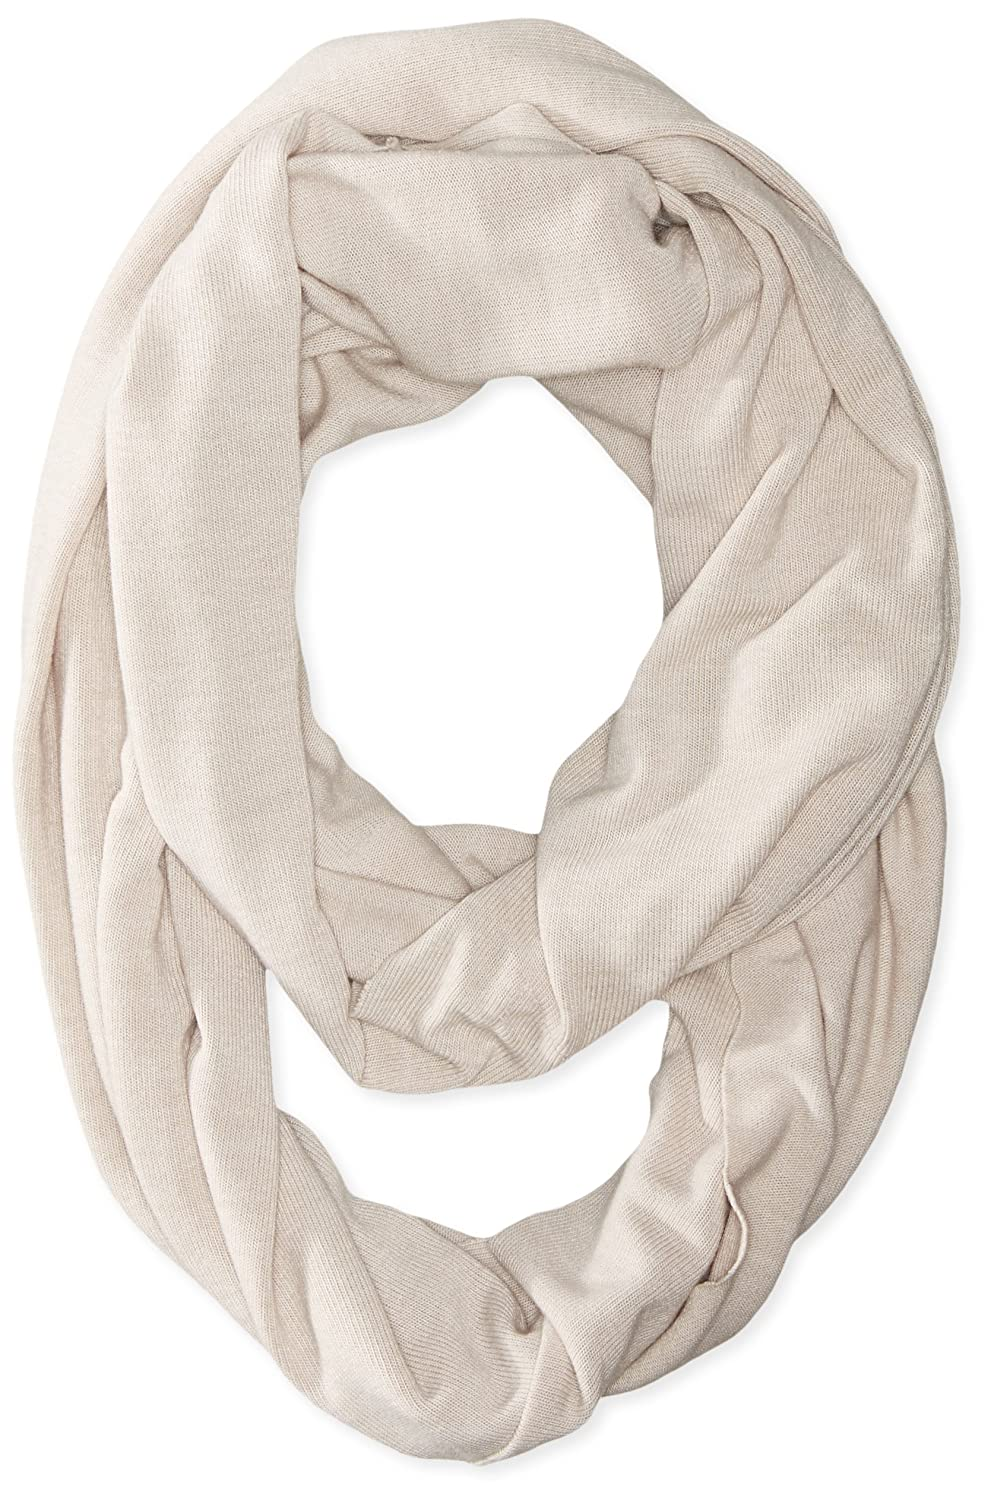 T2Love Big Girls' Round Scarf Stone/Beige 8 T 2 Love Girls 7-16 T208K